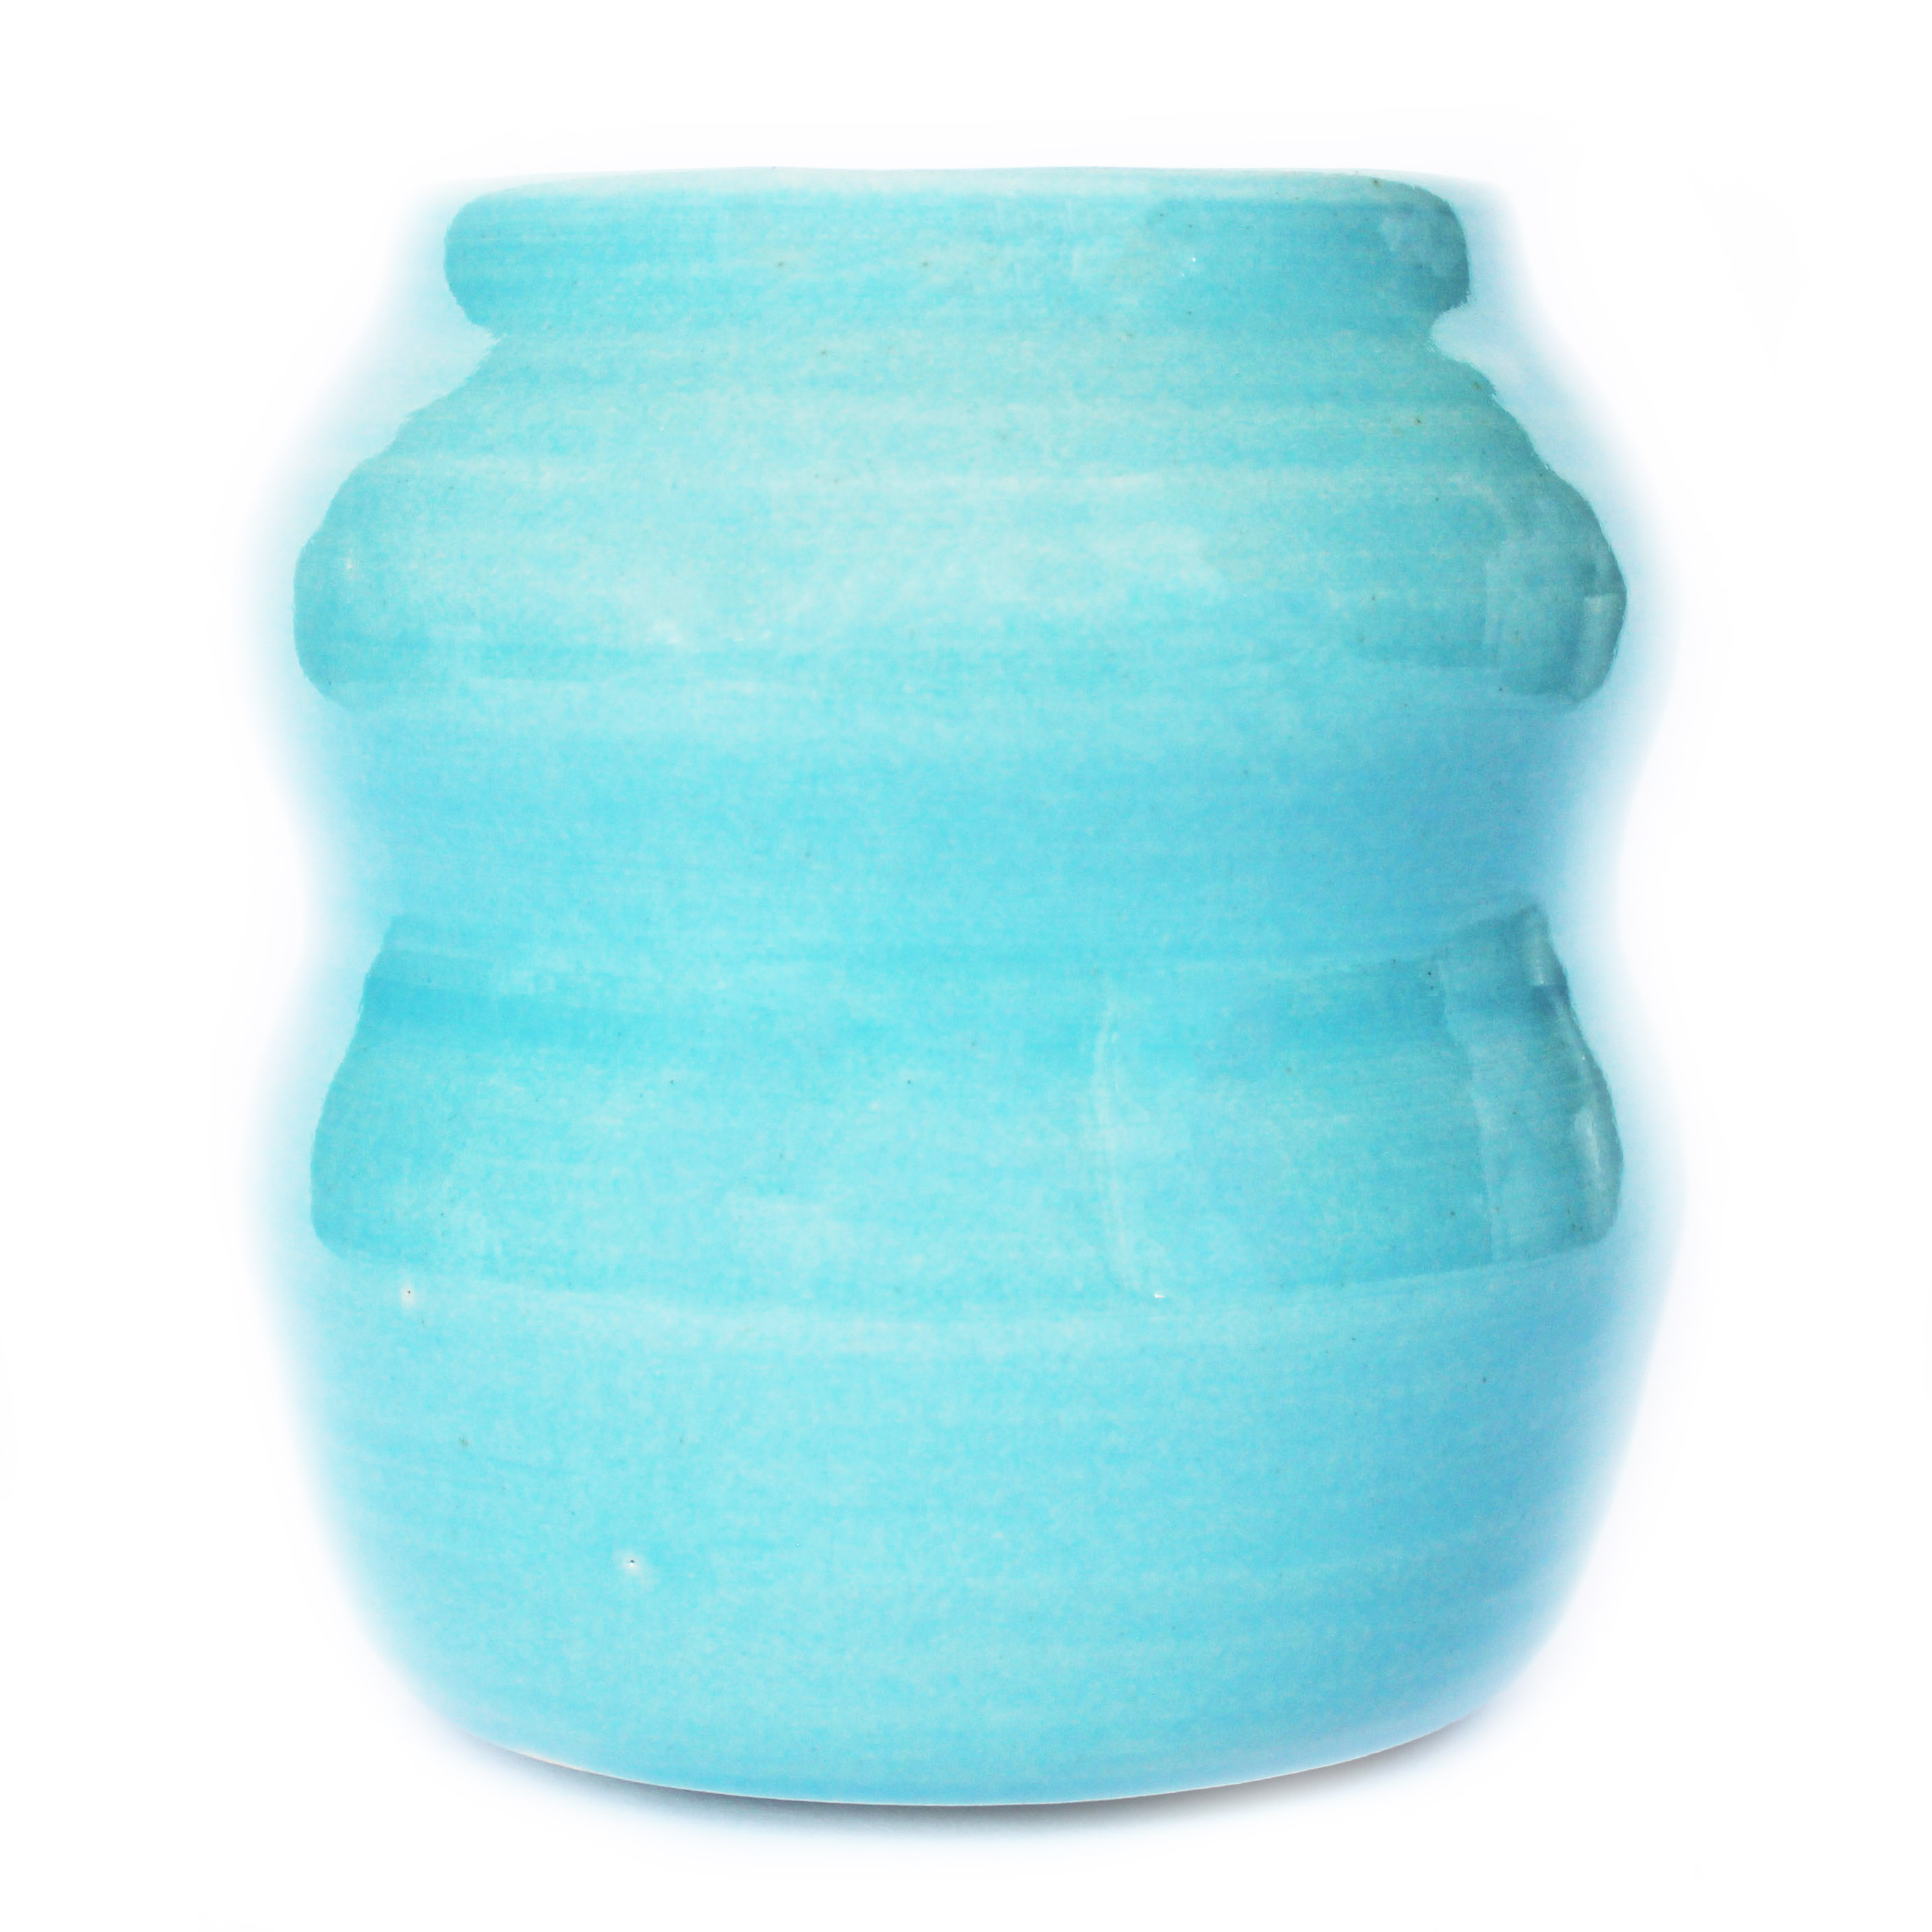 Gloss Sea Blue Curvy Planter